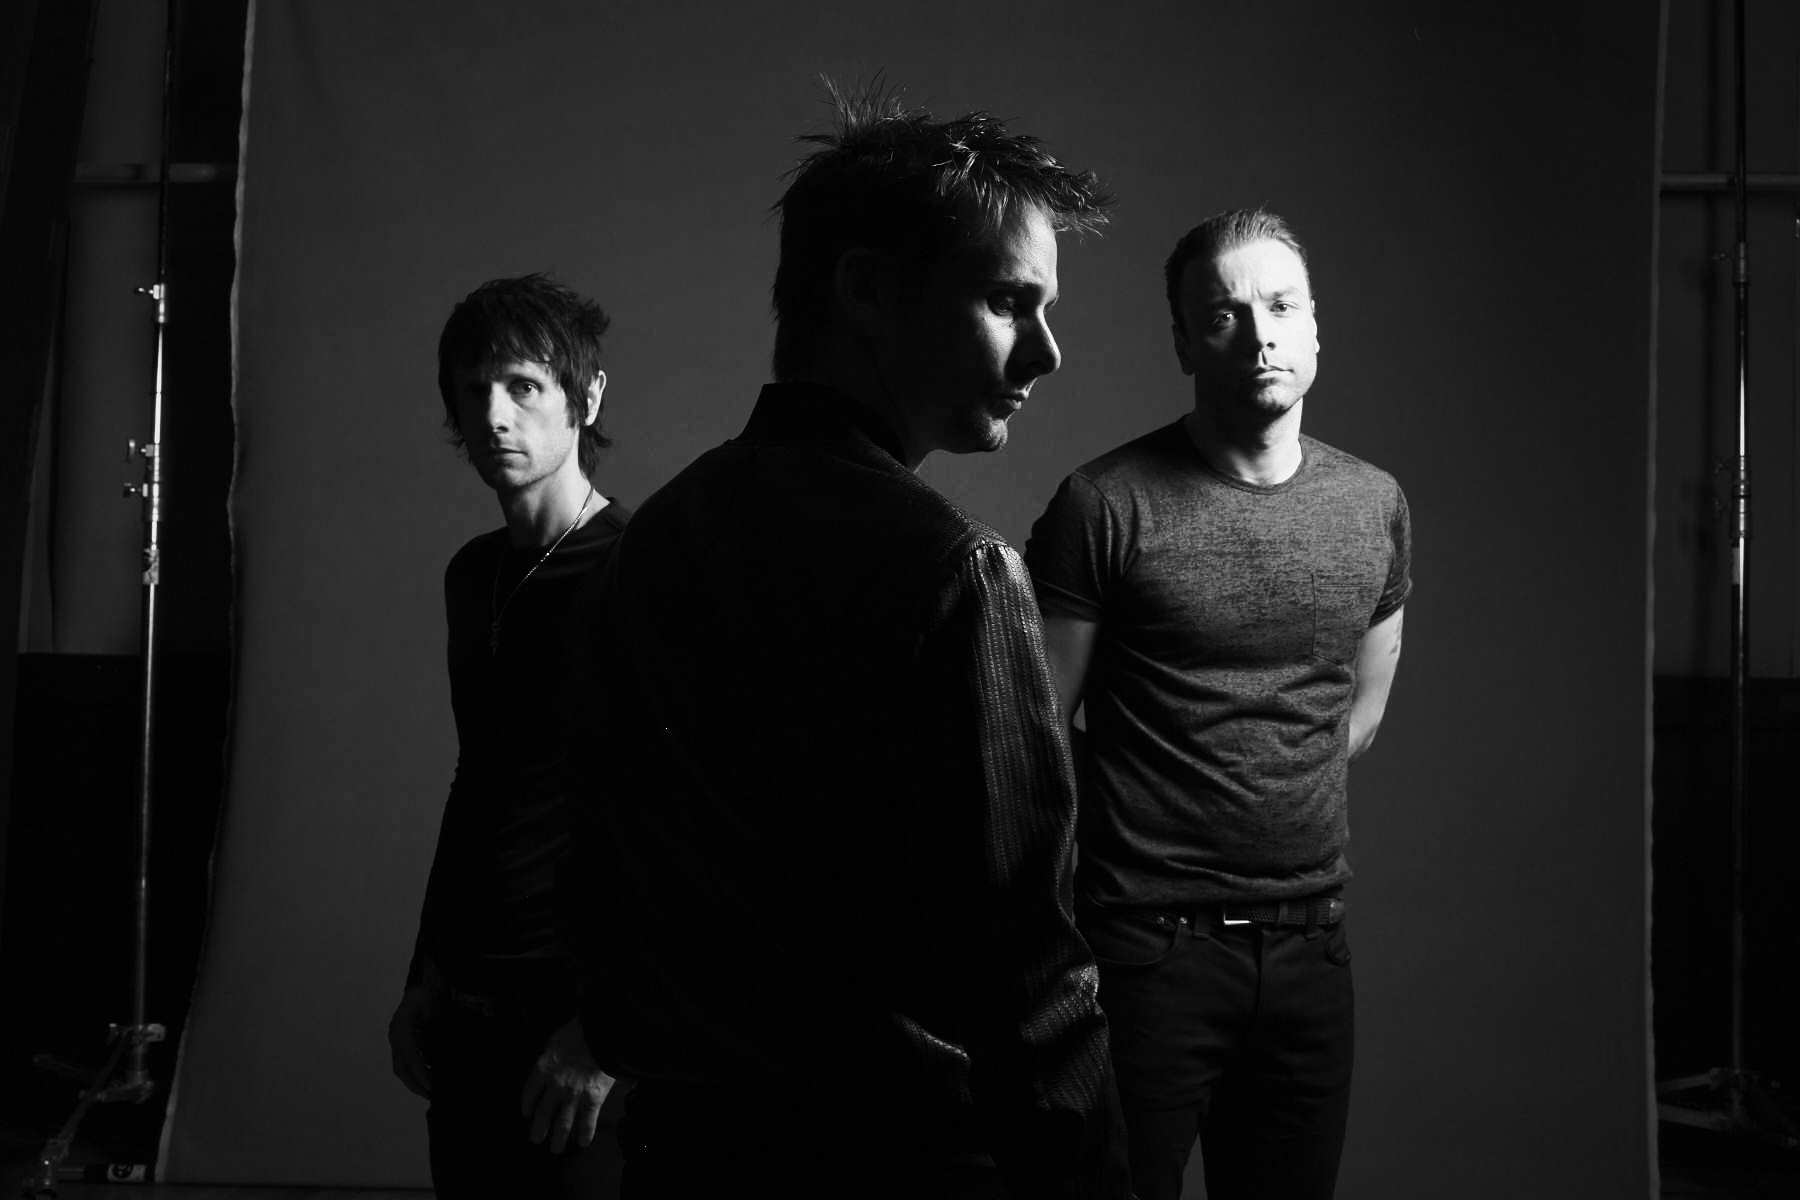 Charitybuzz Meet Muse With 2 Meet Ampamp Greet Passes And 2 Vip